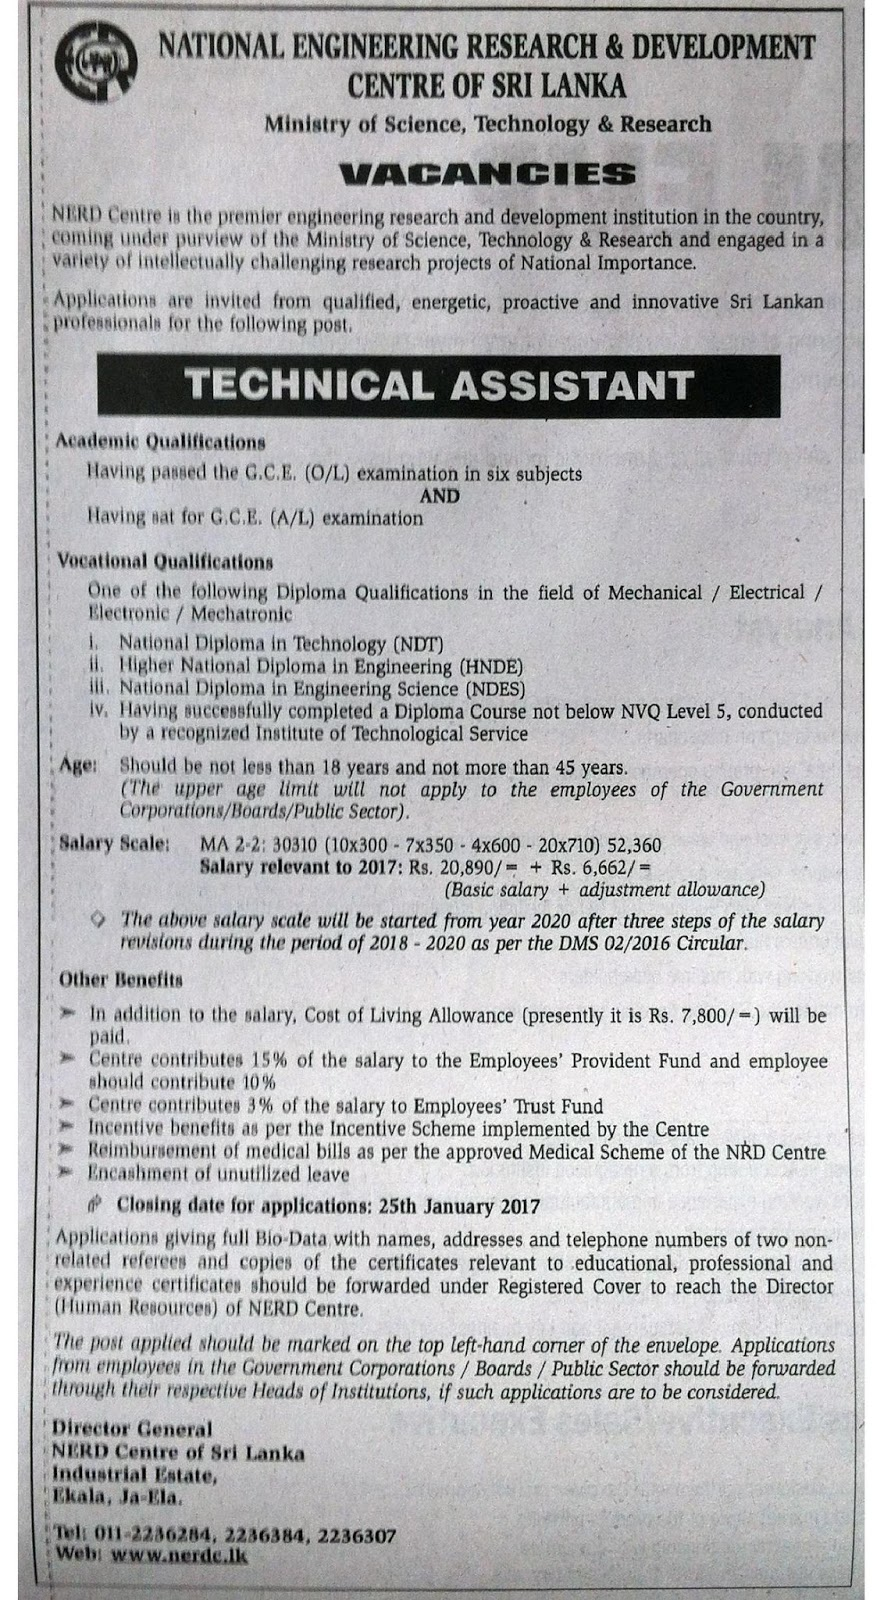 Sri Lankan Government Job Vacancies at National Engineering Research & Development Center of Sri Lanka for Technical Assistants